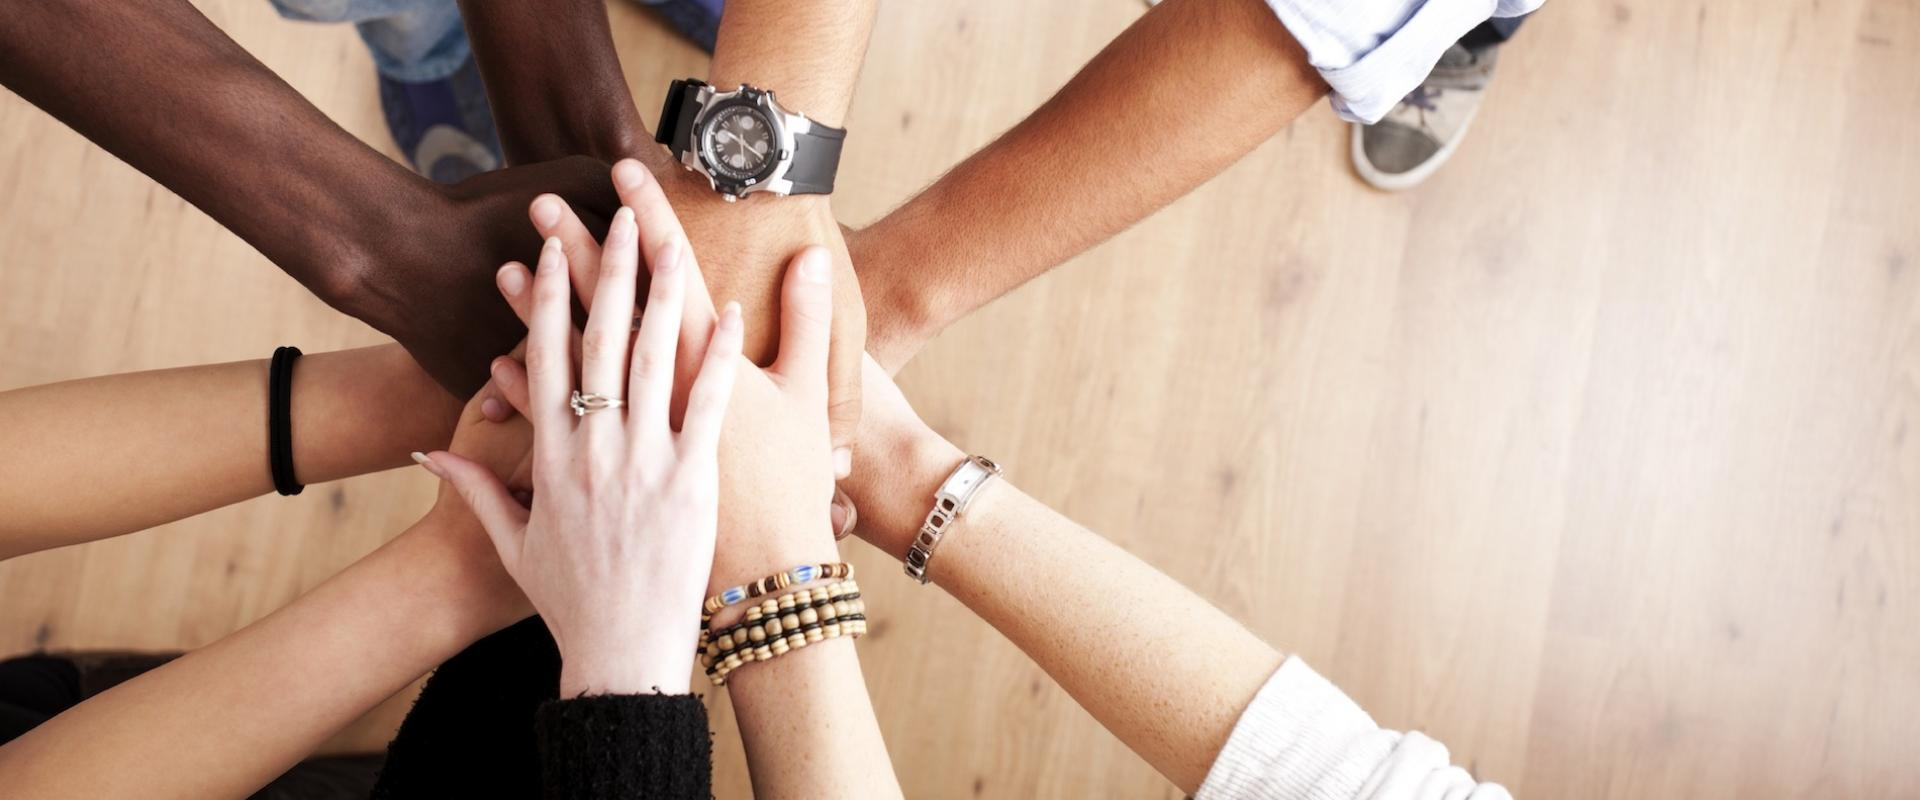 how-to-foster-more-teamwork-in-your-office-1920x800